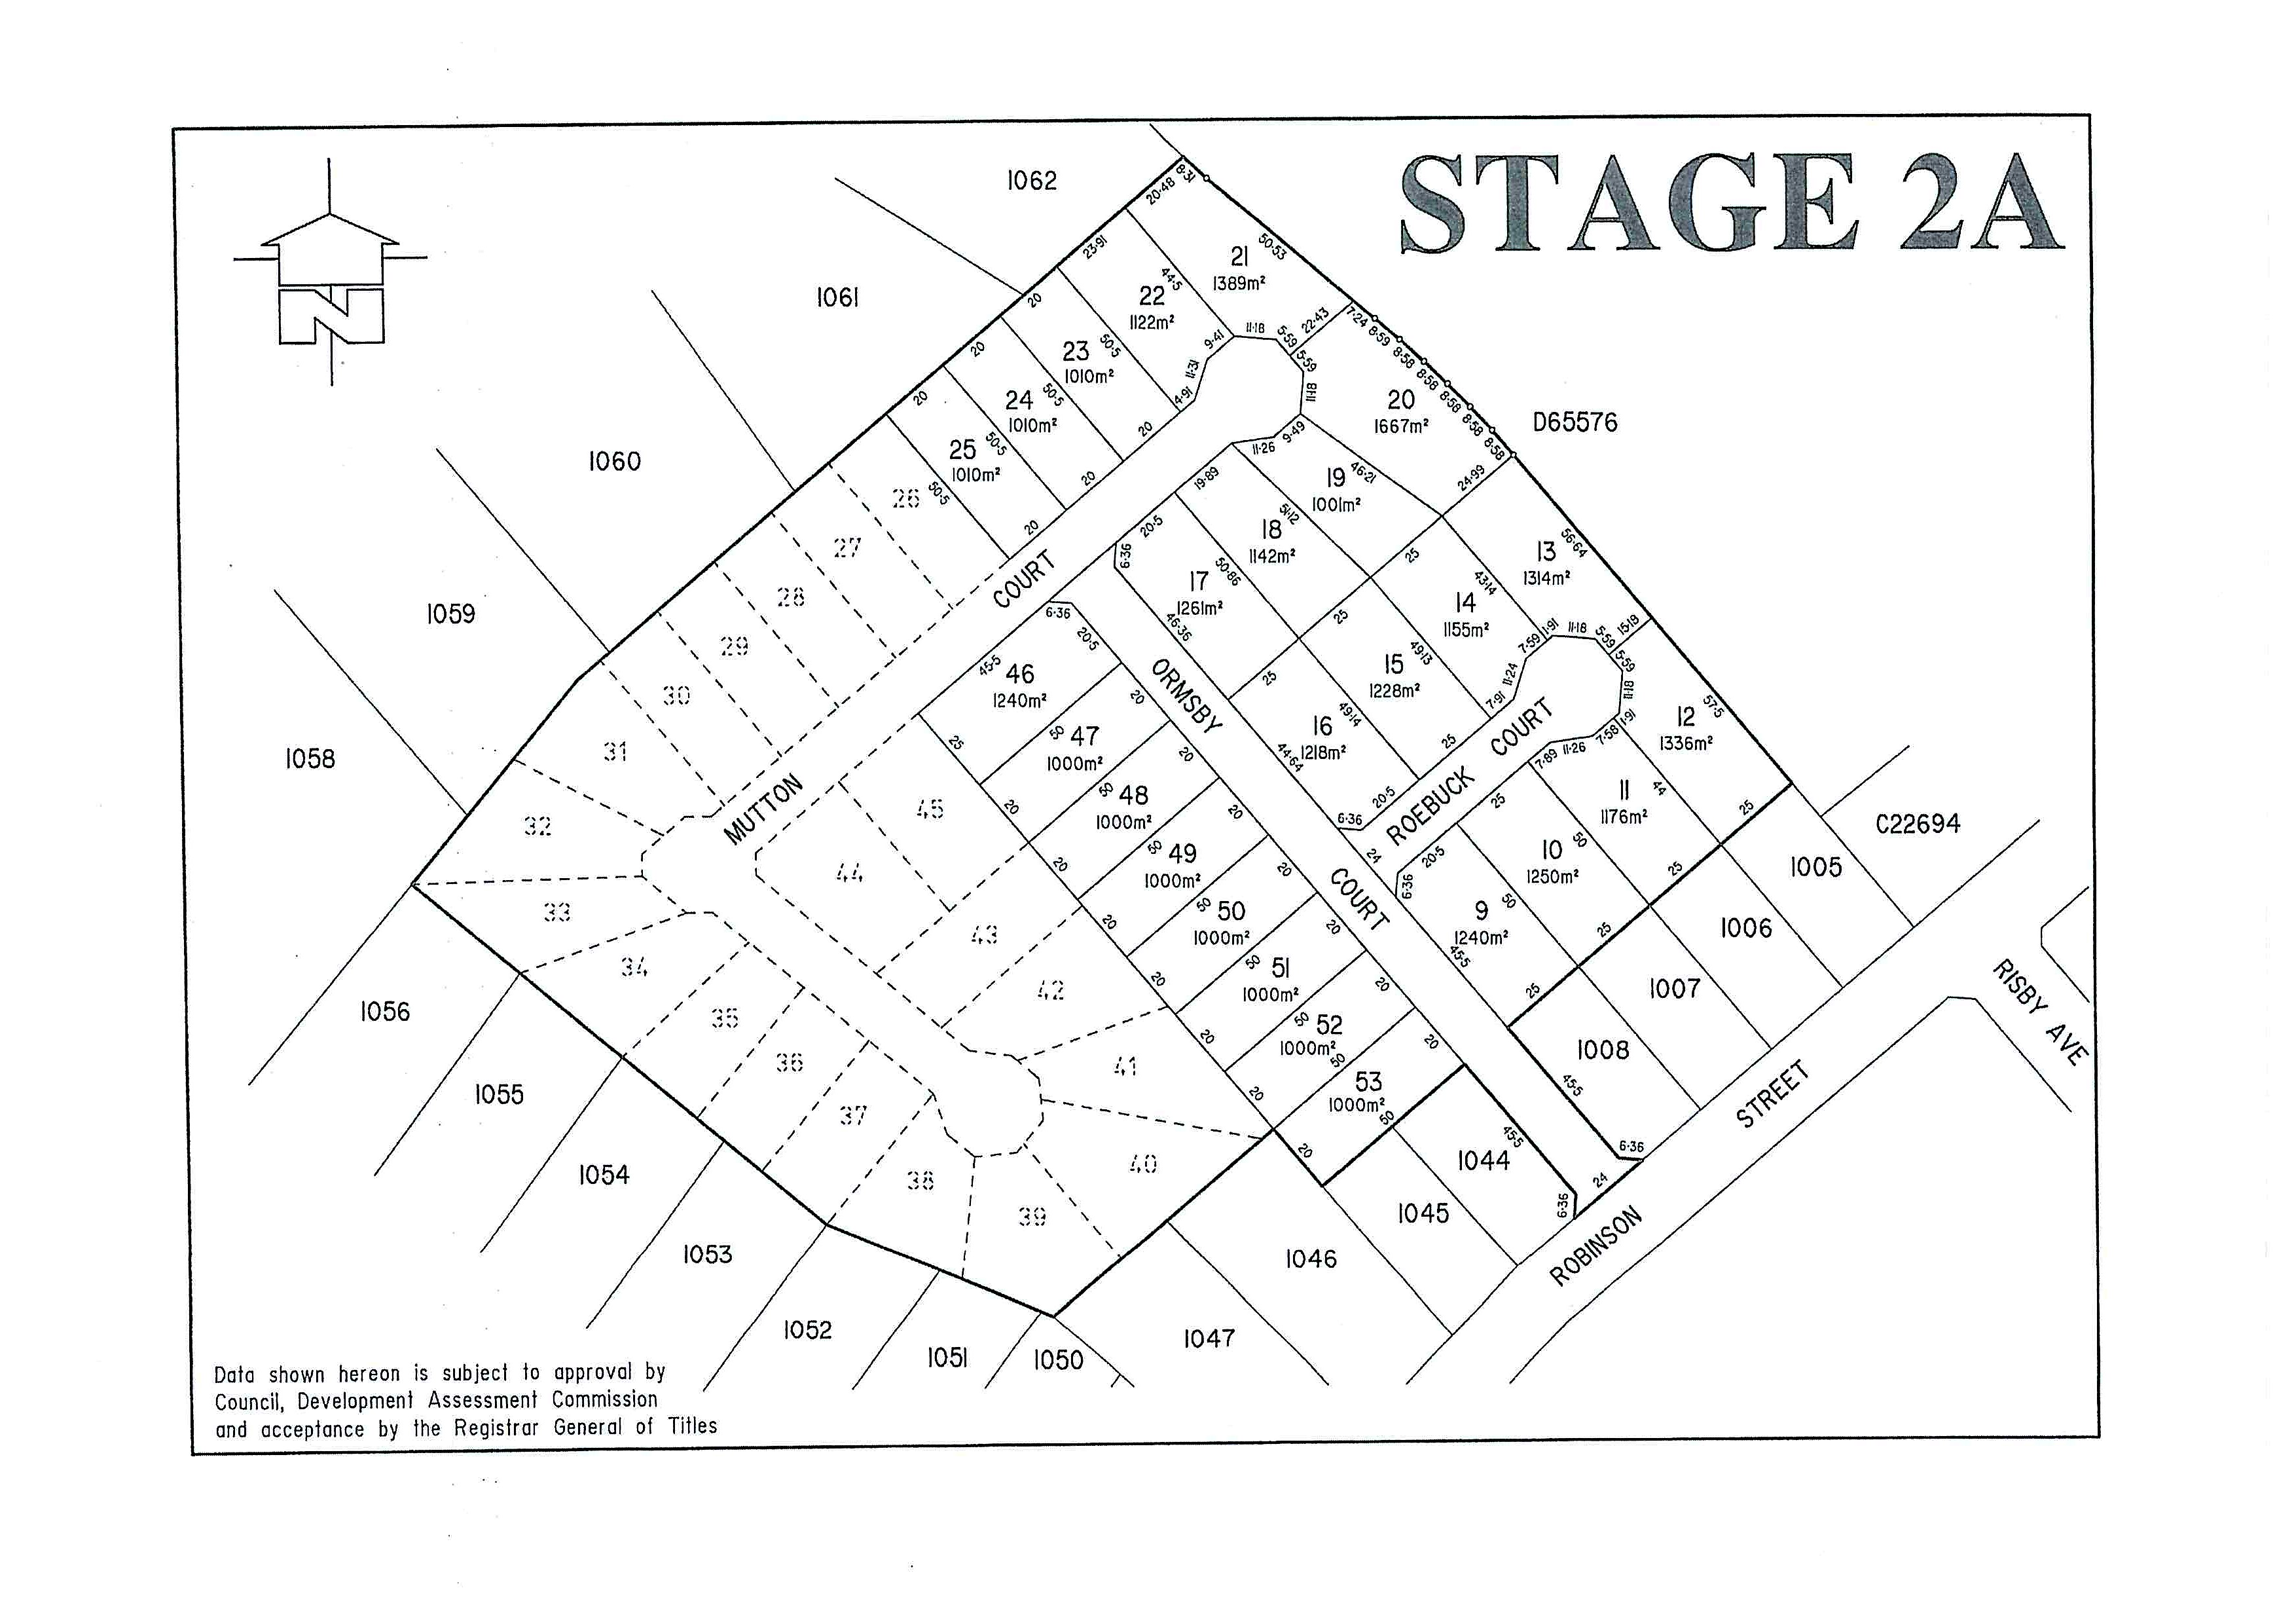 Lot 3004/STAGE 2 ROBINSON STREET WHYALLA JENKINS